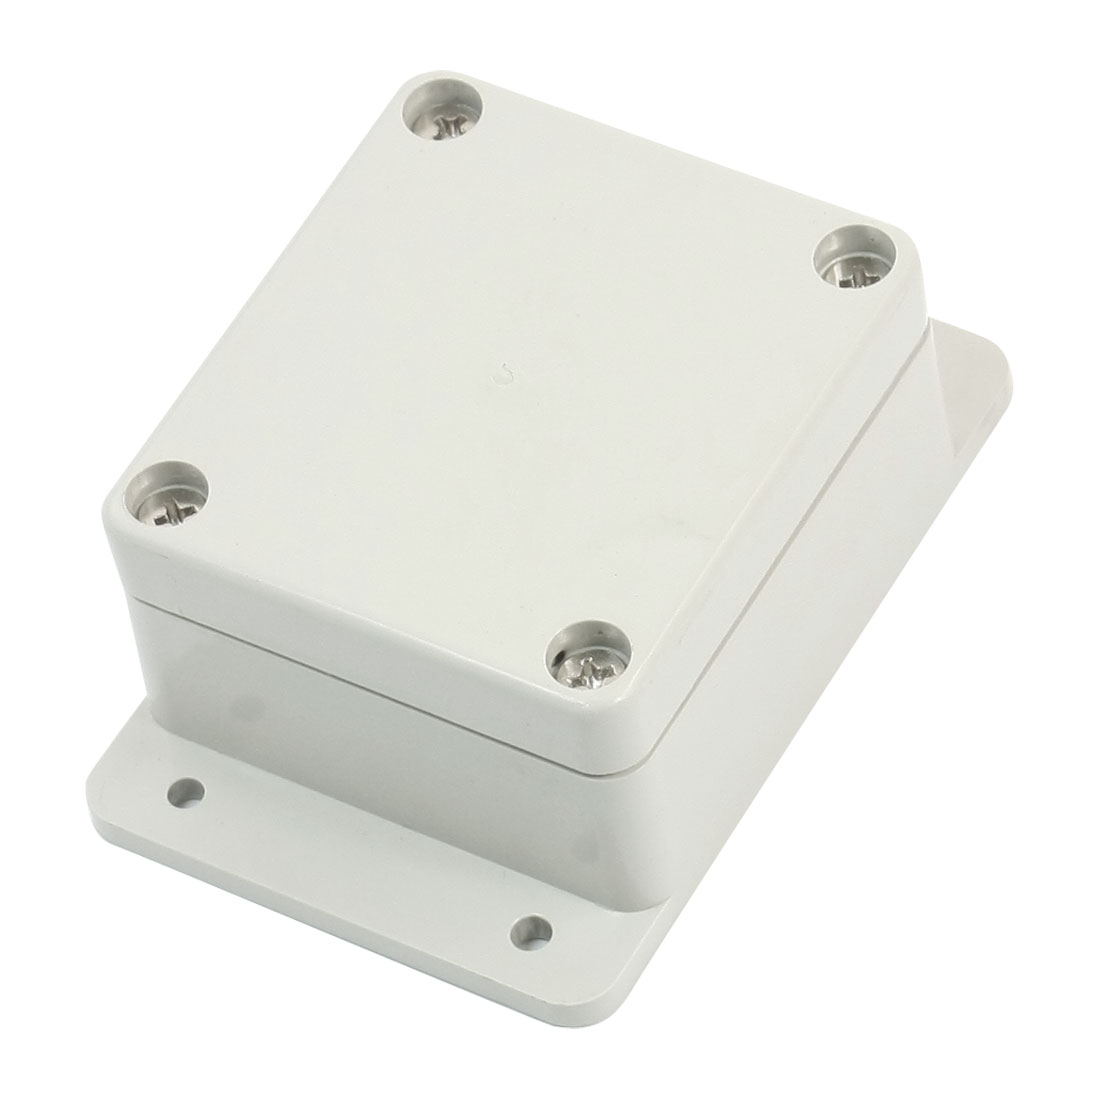 Surface Mounting Rectangle Waterproof Plastic Sealed Electric Power Protector Junction Box Cover 90mm x 60mm x 35mm